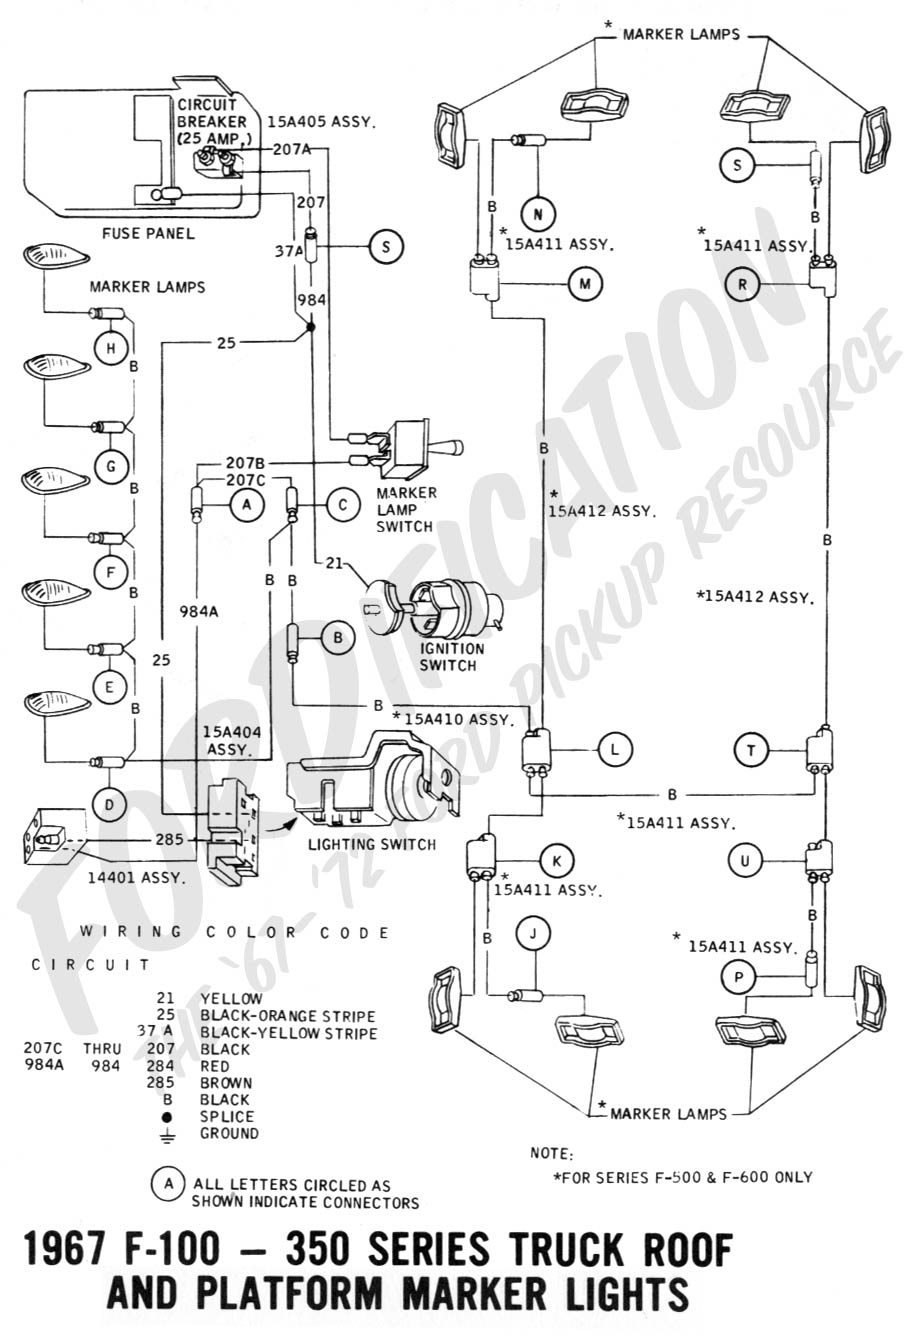 1967 ford econoline wiring diagram 1967 ford f250 wiring diagram ford truck technical drawings and schematics - section h - wiring diagrams